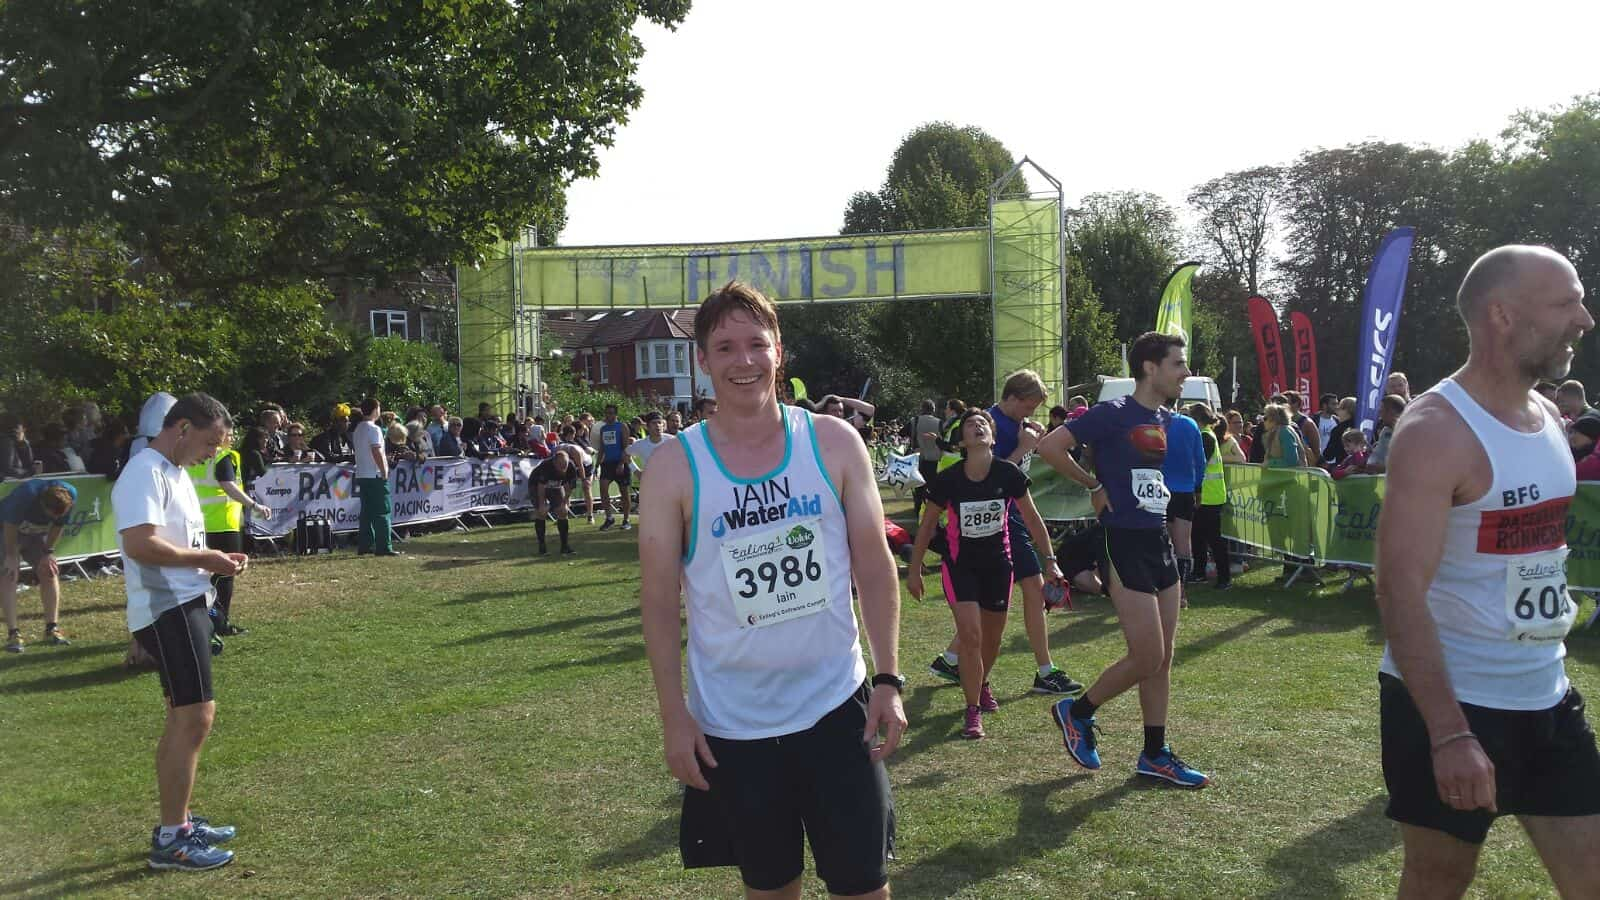 Ealing Half 2016 Finish